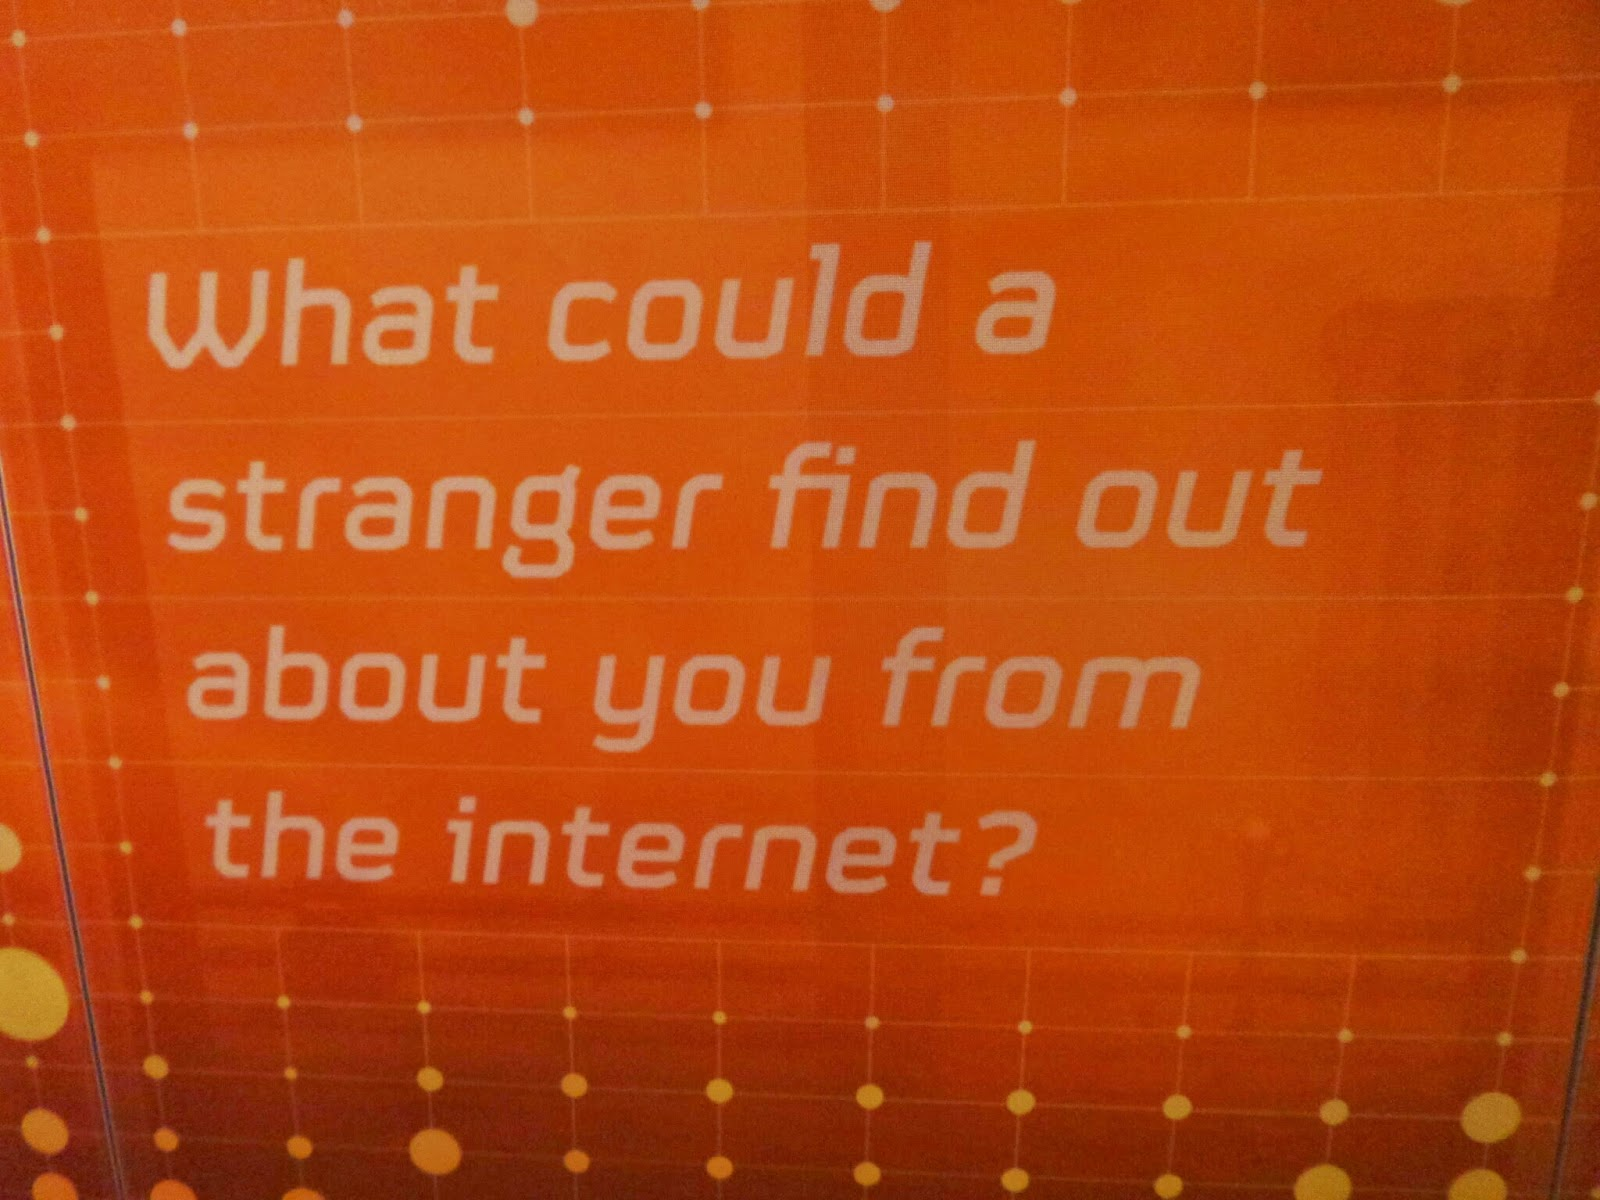 What could a stranger find out about you on the internet?